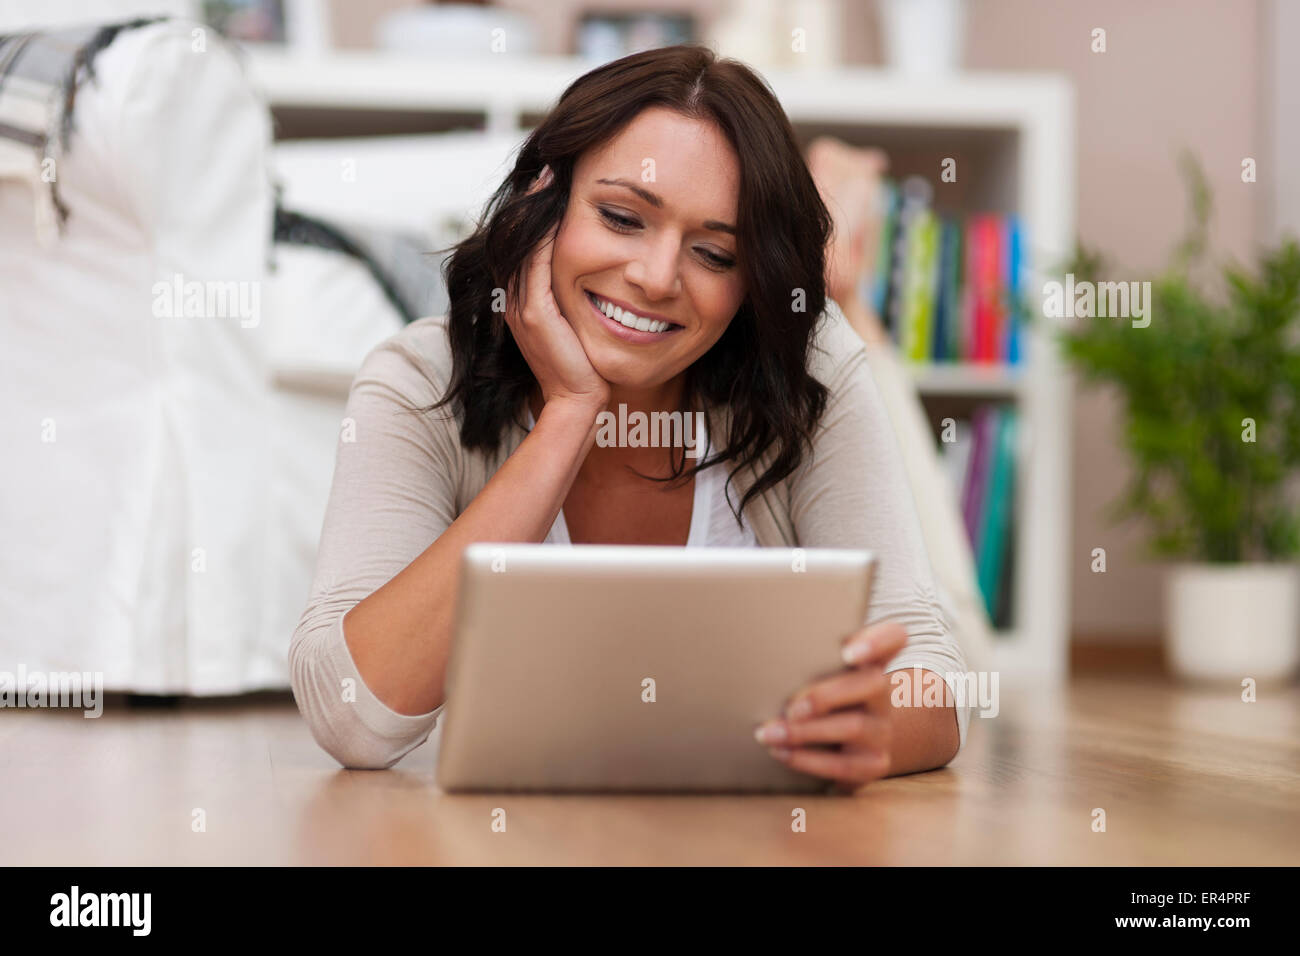 My digital tablet has so many options. Debica, Poland - Stock Image